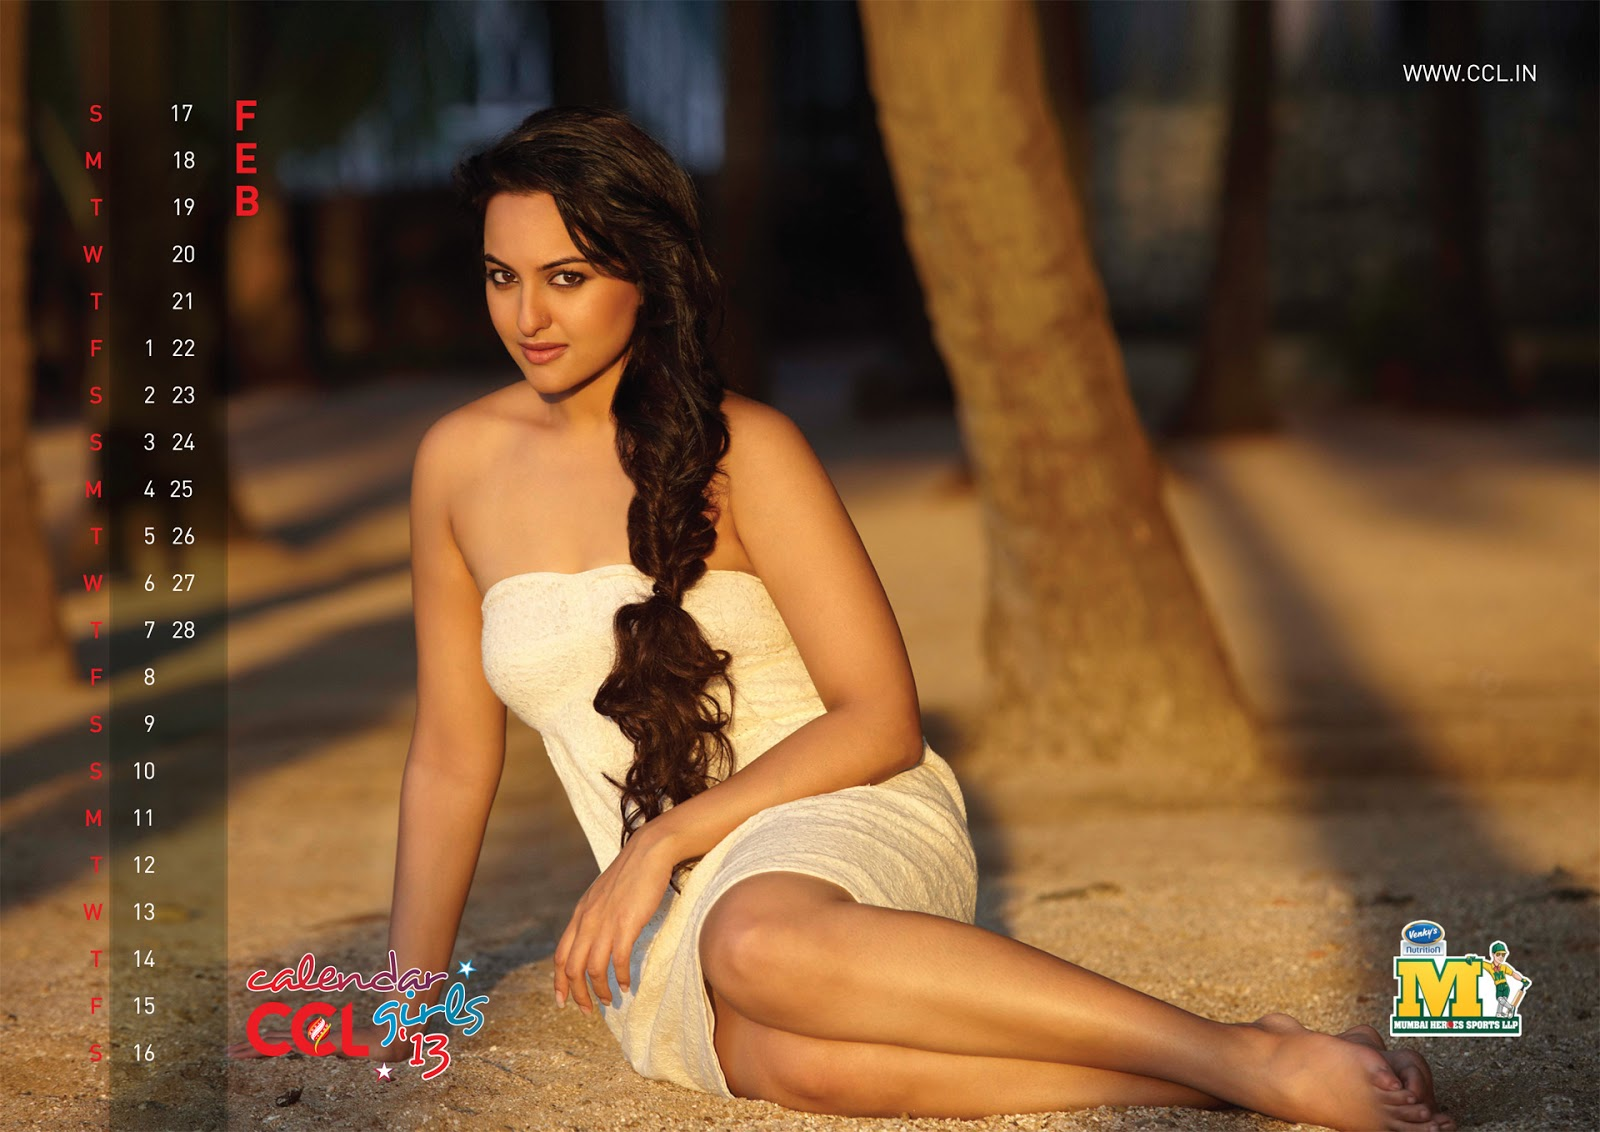 Celebrity Cricket League (CCL) calender hot photoshoot ...